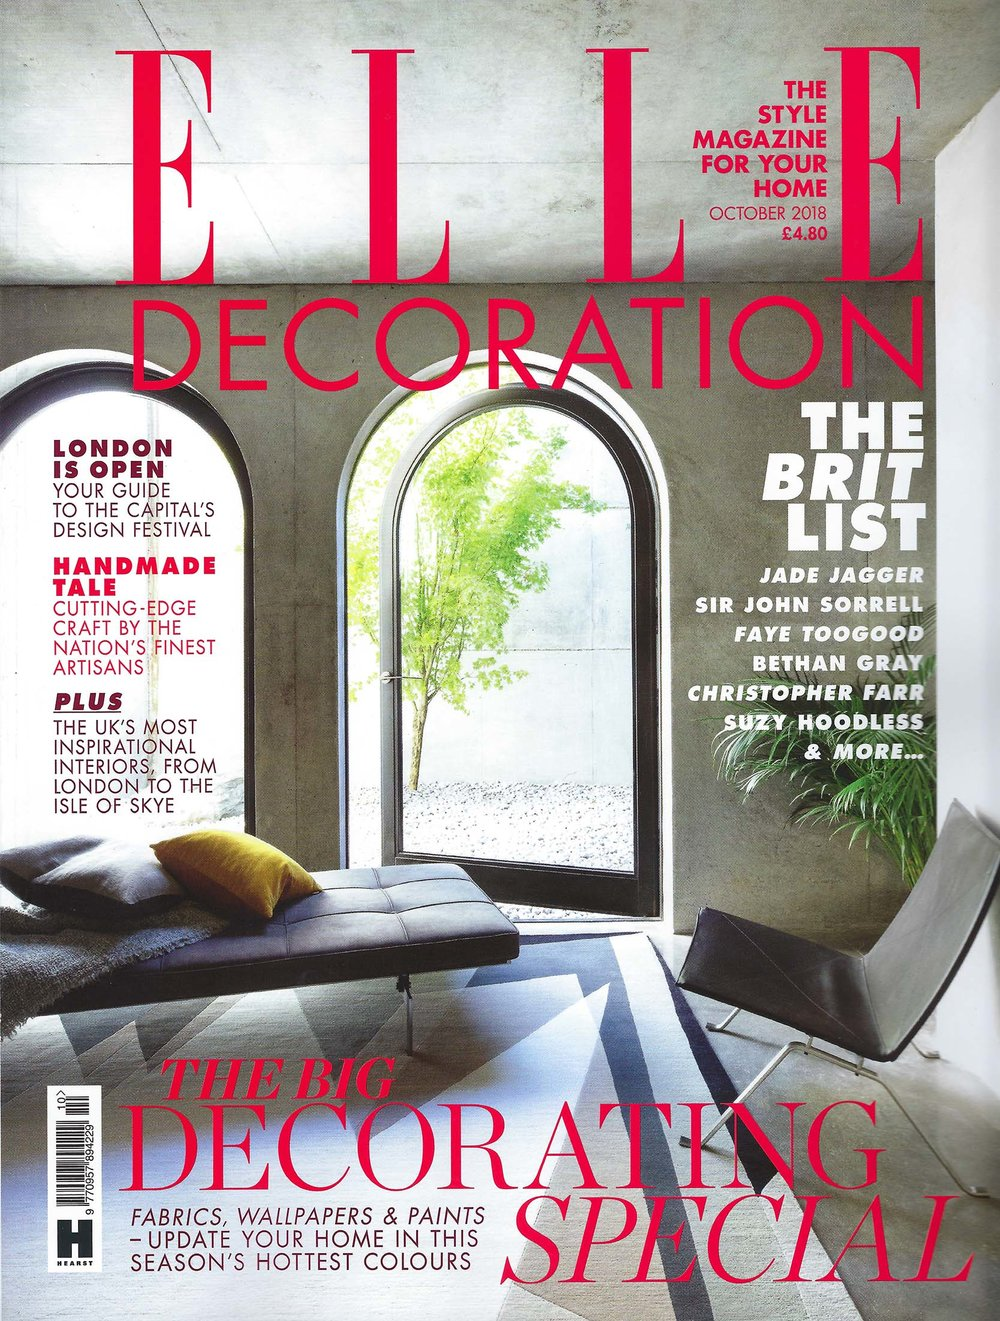 Elle Decoration October 2018.jpeg